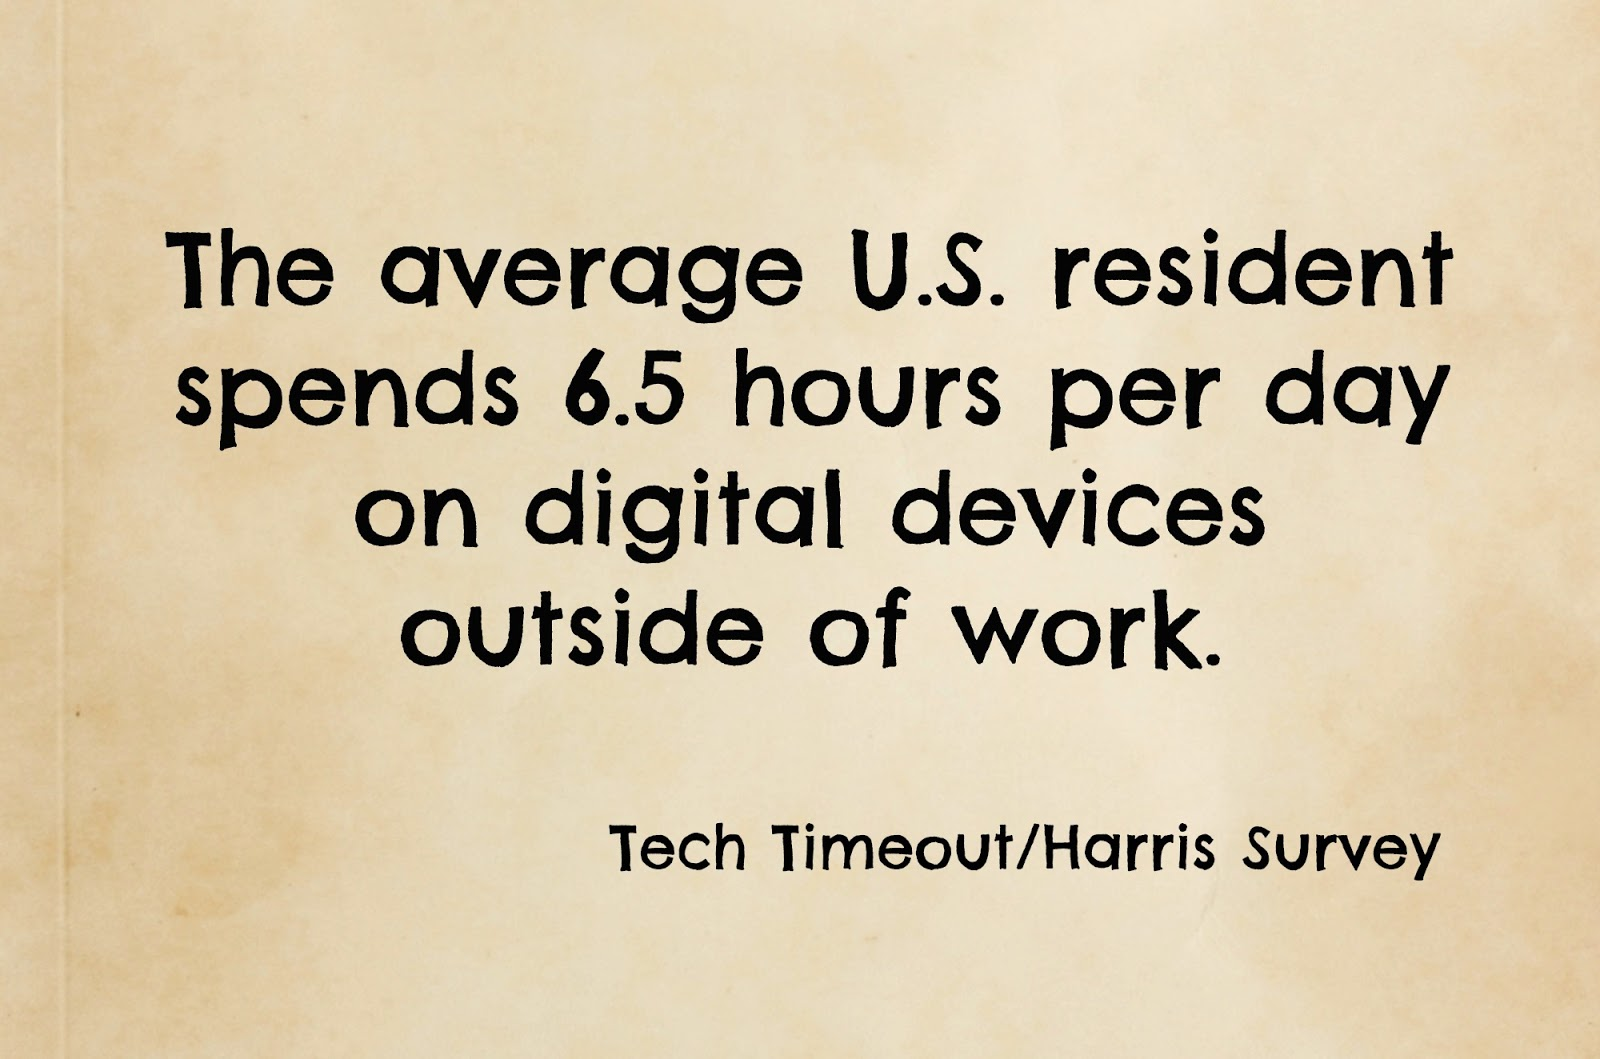 Take a Tech Timeout in 3 Easy Step - The average US resident spends 6.5 hours per day on digital devices outside of work